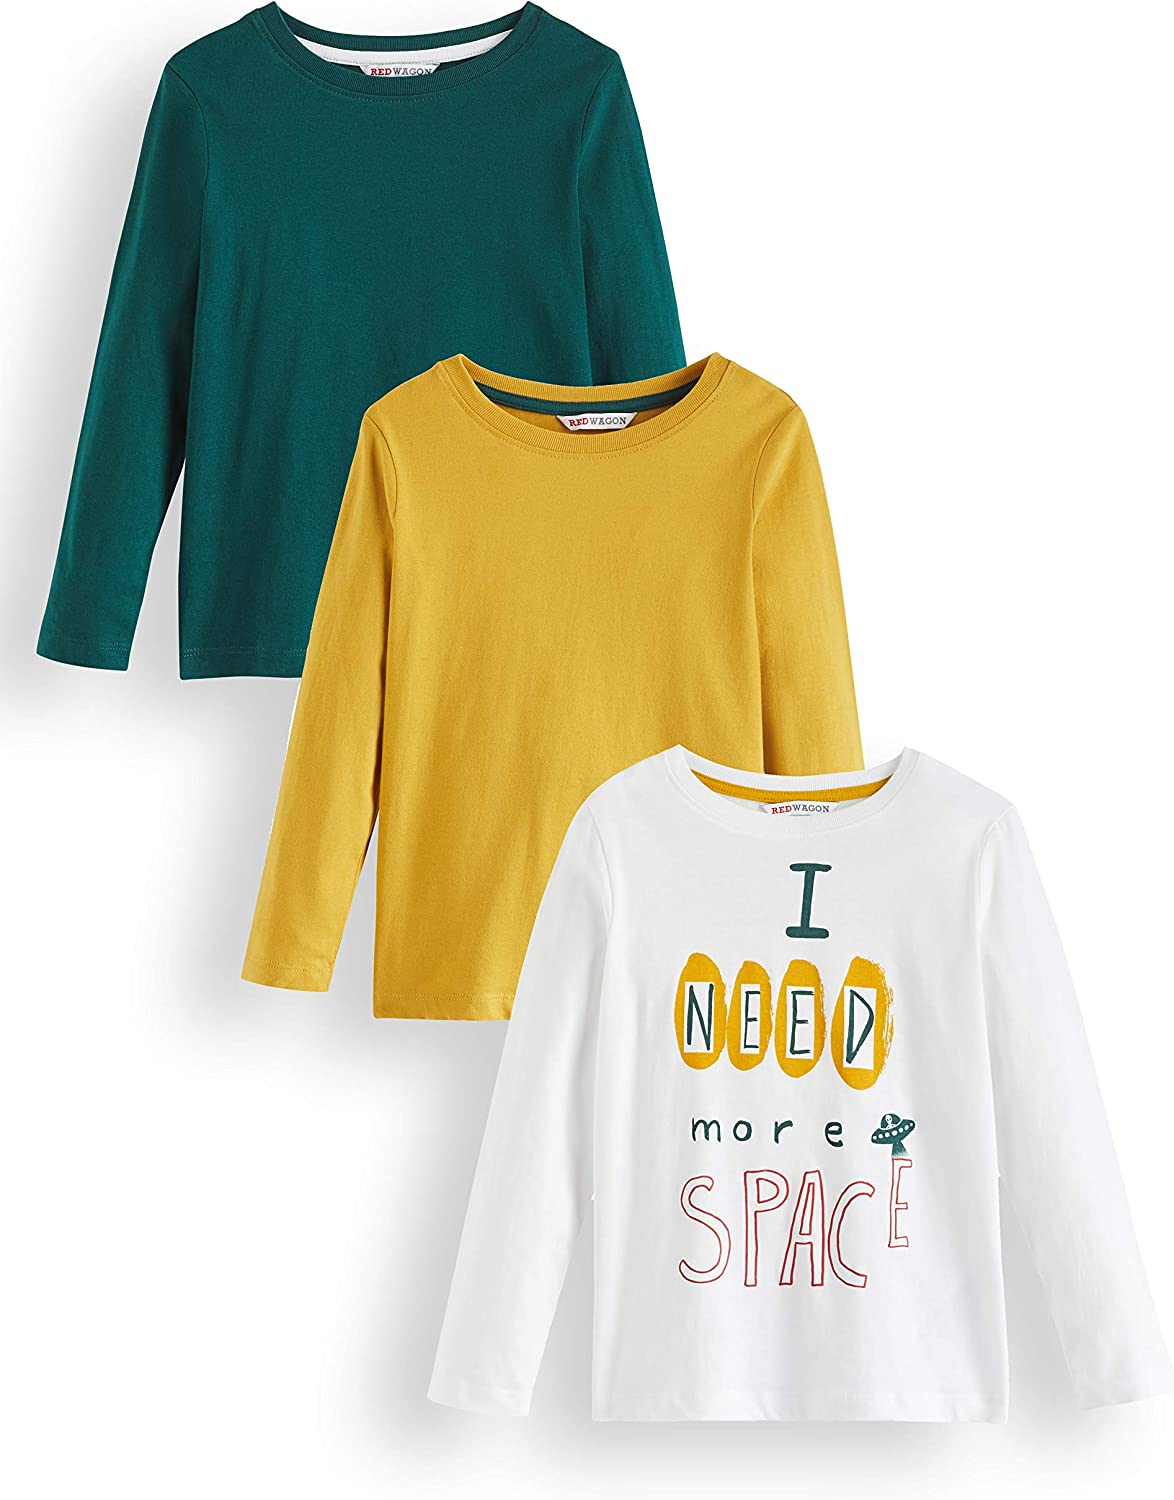 RED WAGON Boys Long Sleeve Top Pack of 3